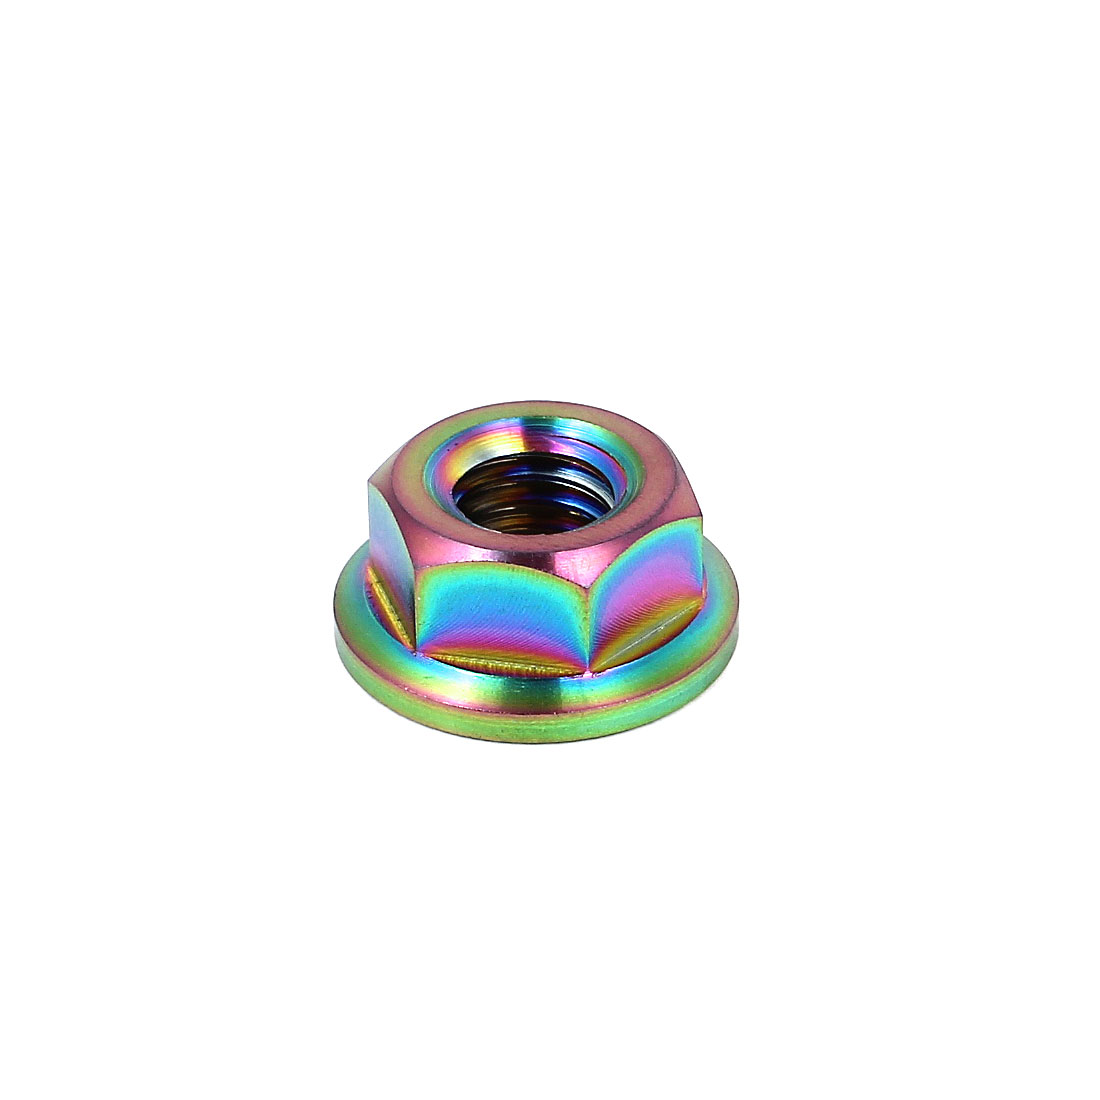 8mm High Colorful TC4 Titanium Ti Hex Flange Nut M8x1mm for Bike Motorcycle Car